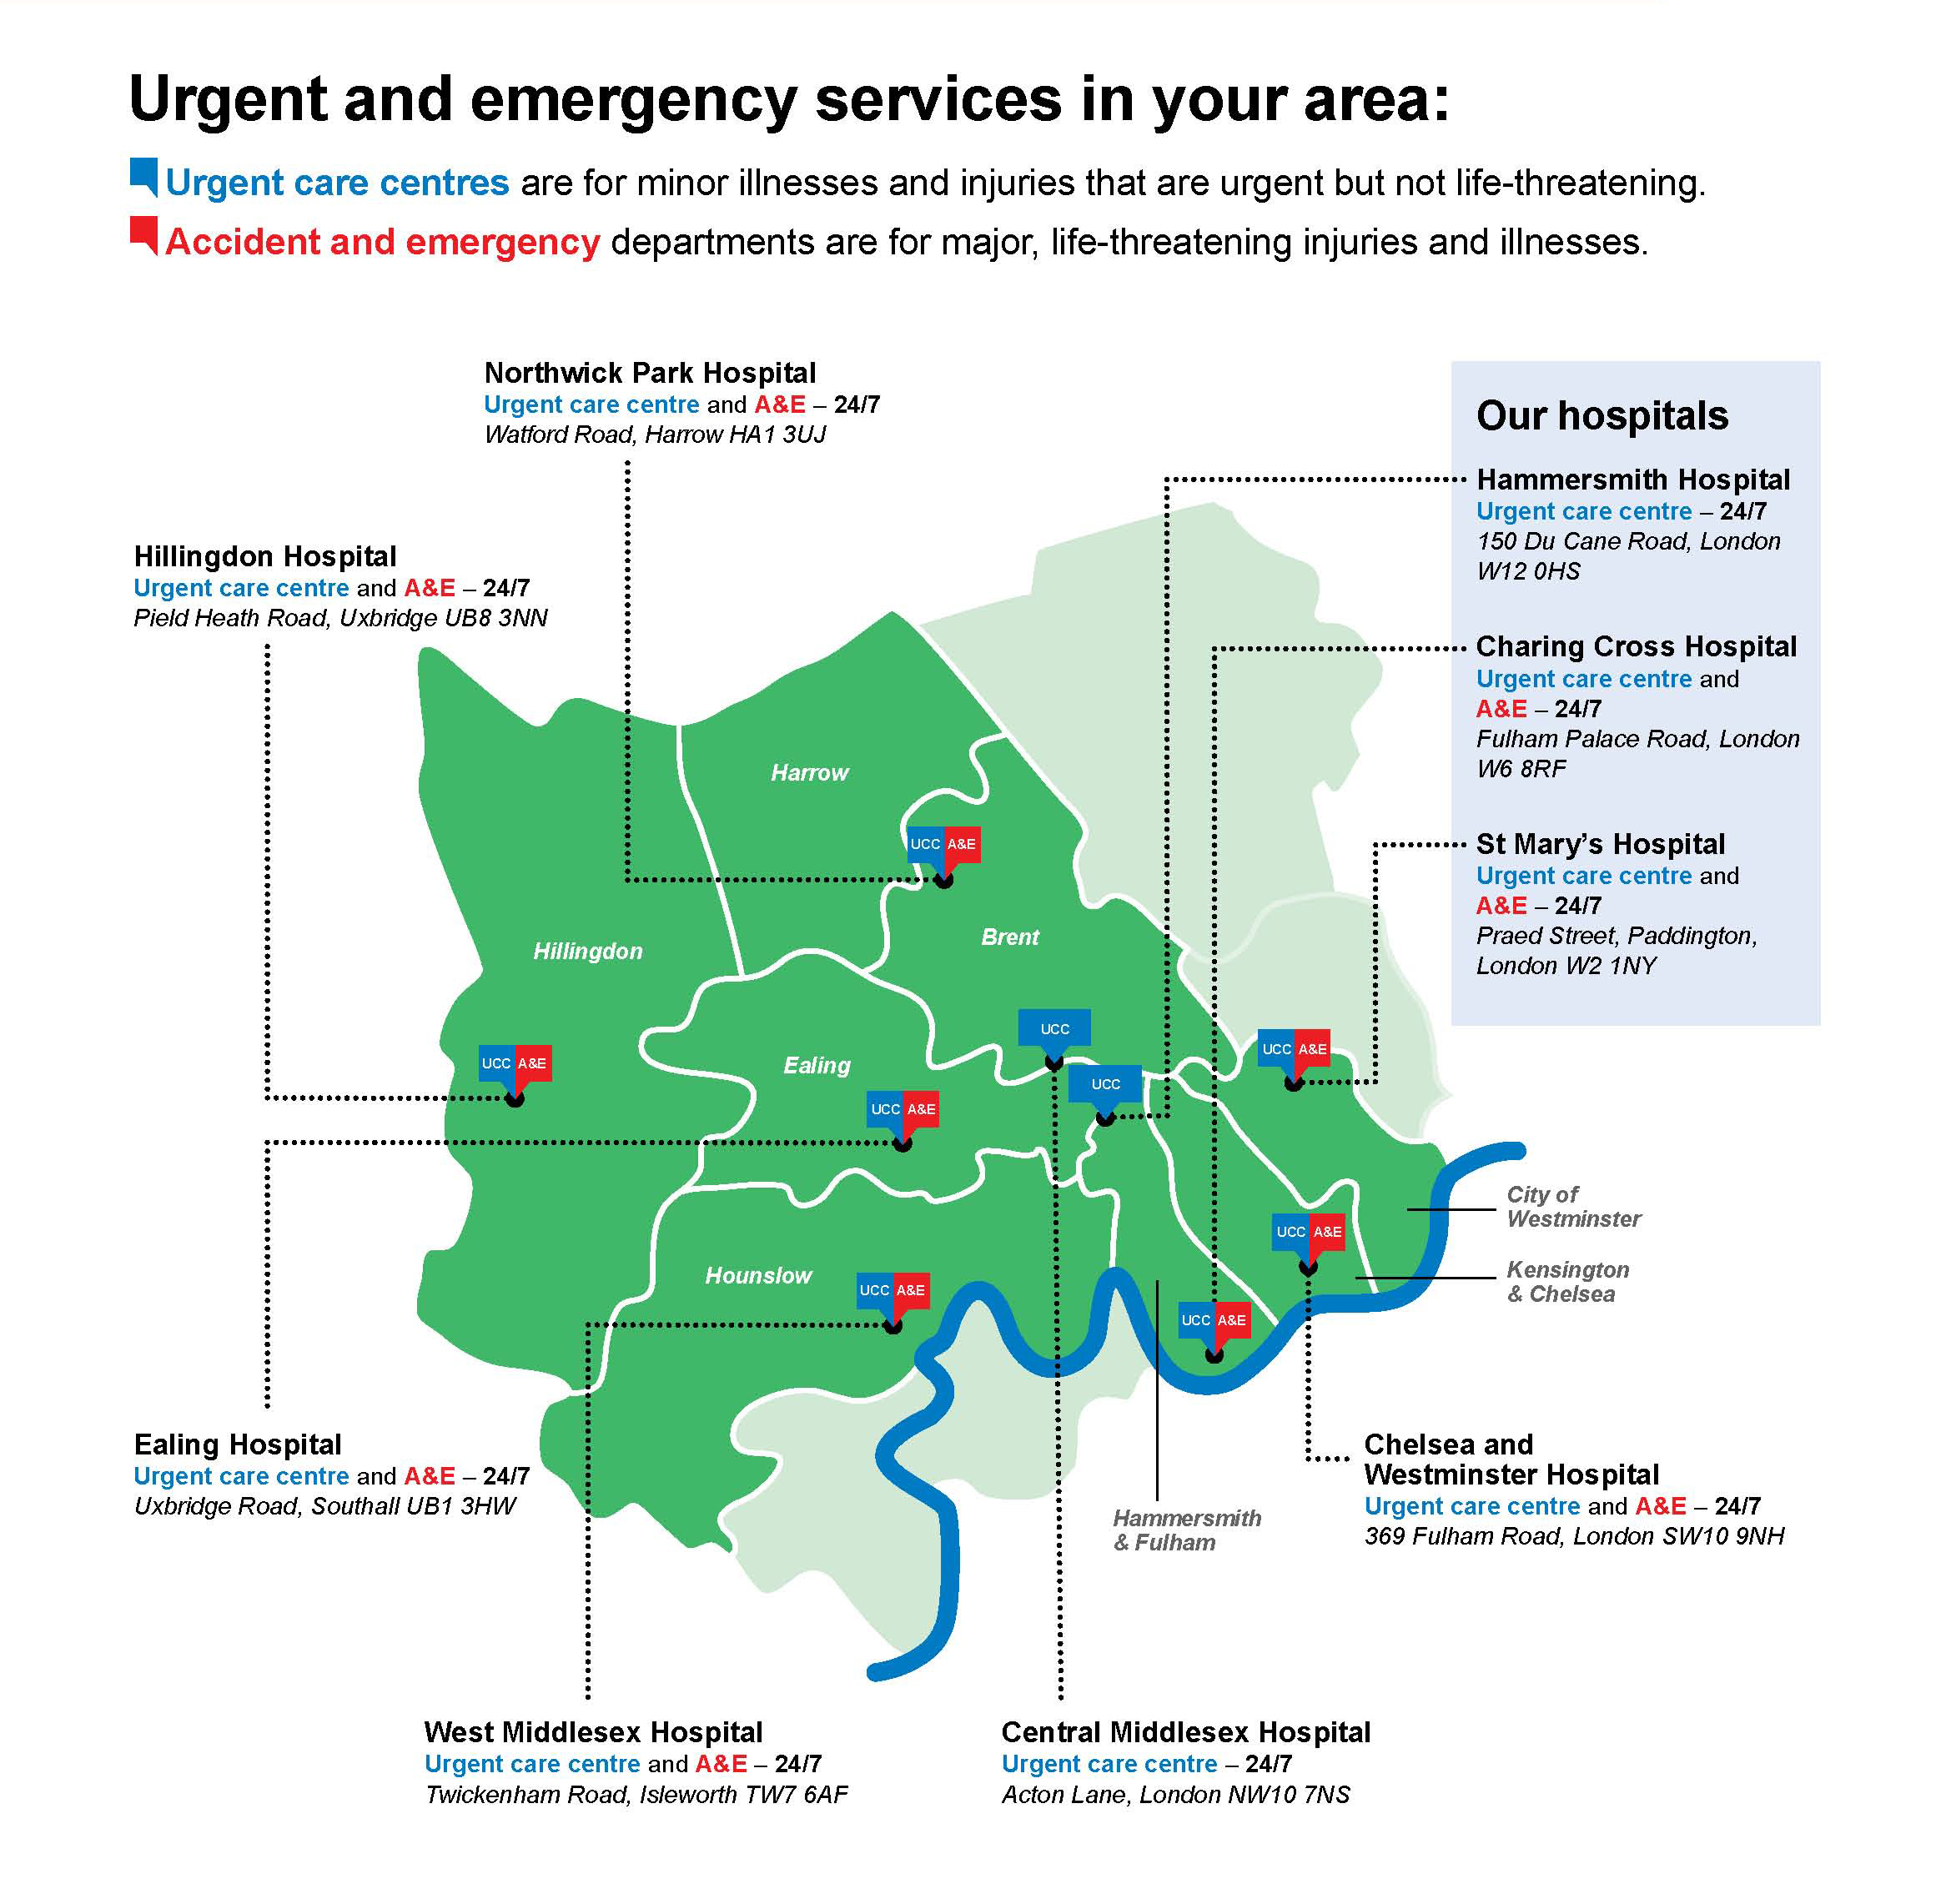 A map of urgent care centres in your area